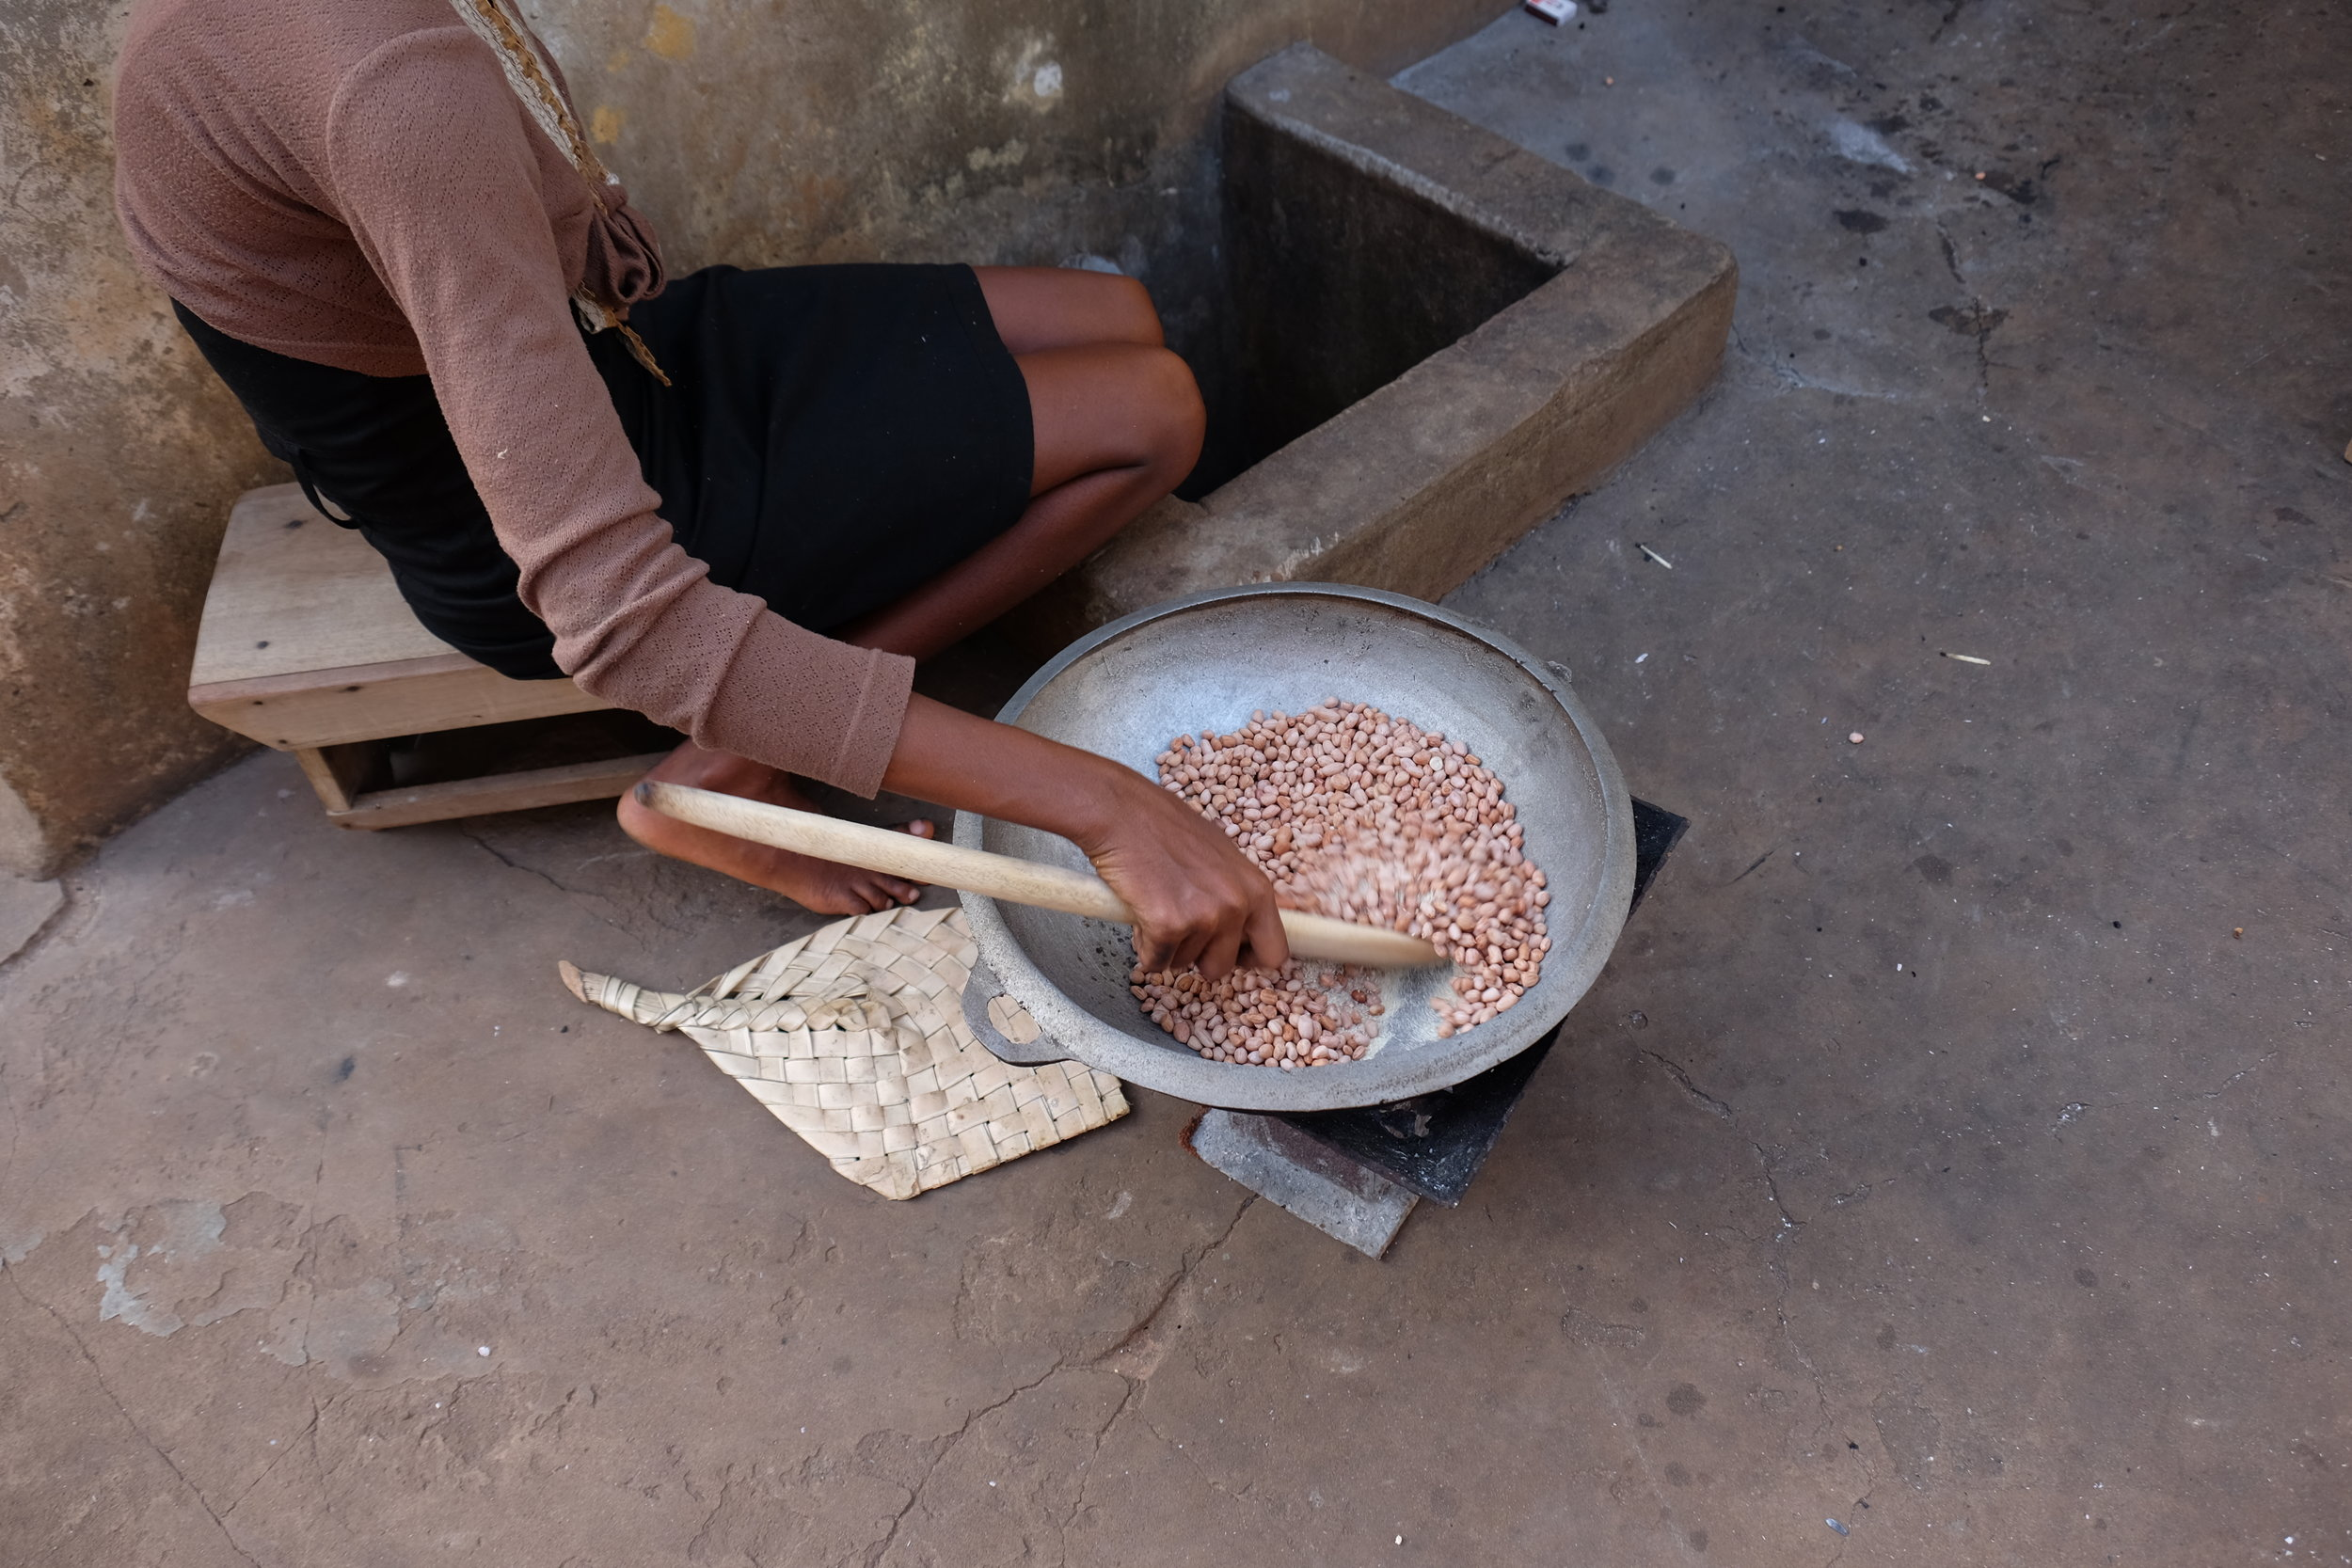 God's Way toasted them and we ate them in the courtyard in the afternoon. I LOVE Saturdays in Ghana.